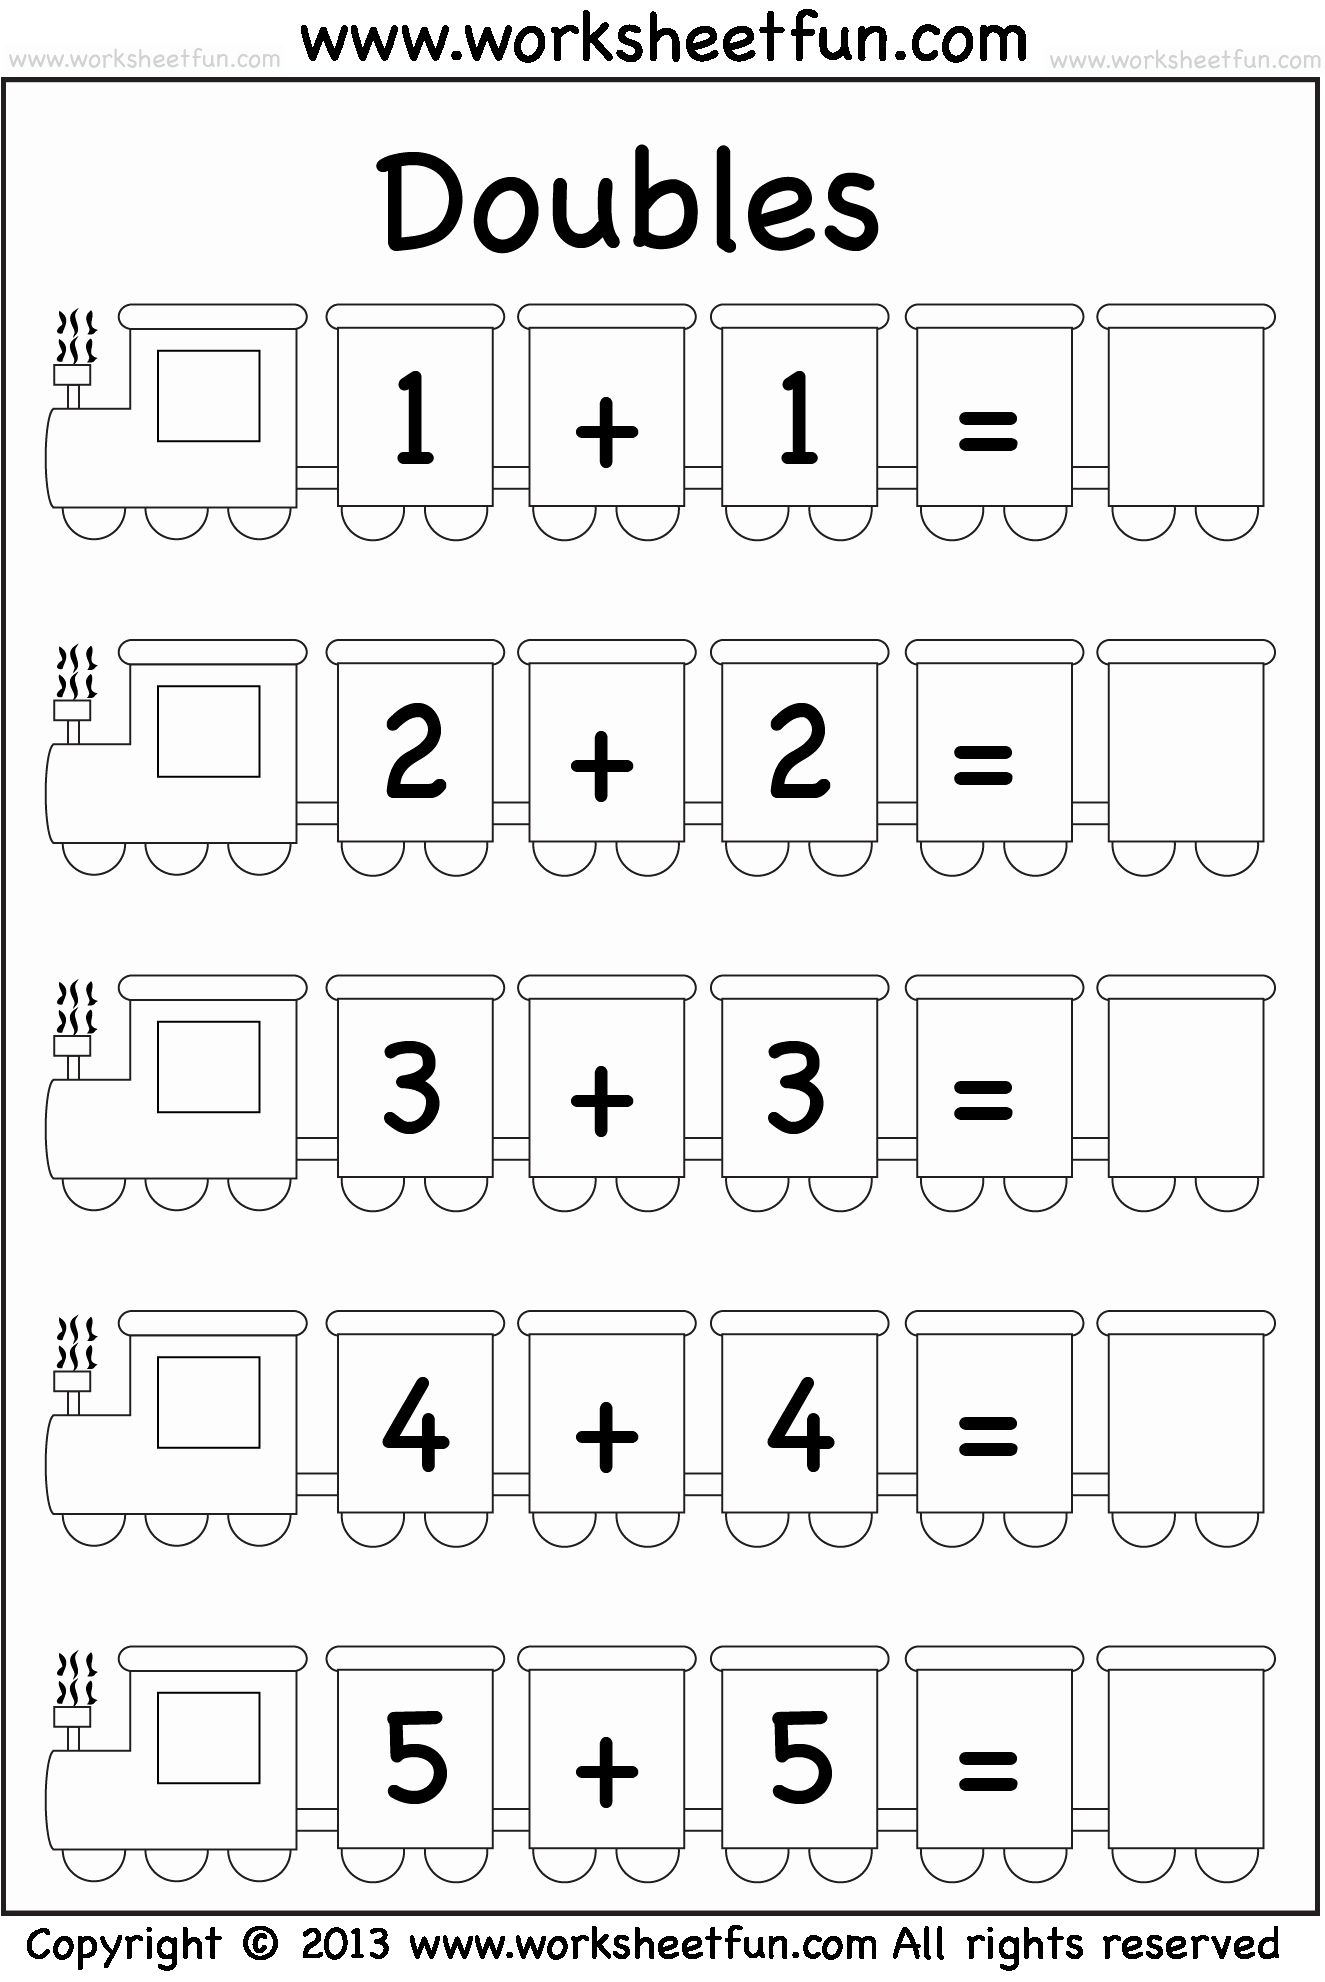 Doubles Math Facts Worksheet Awesome Addition Doubles – 1 Worksheet Free Printable Worksheets